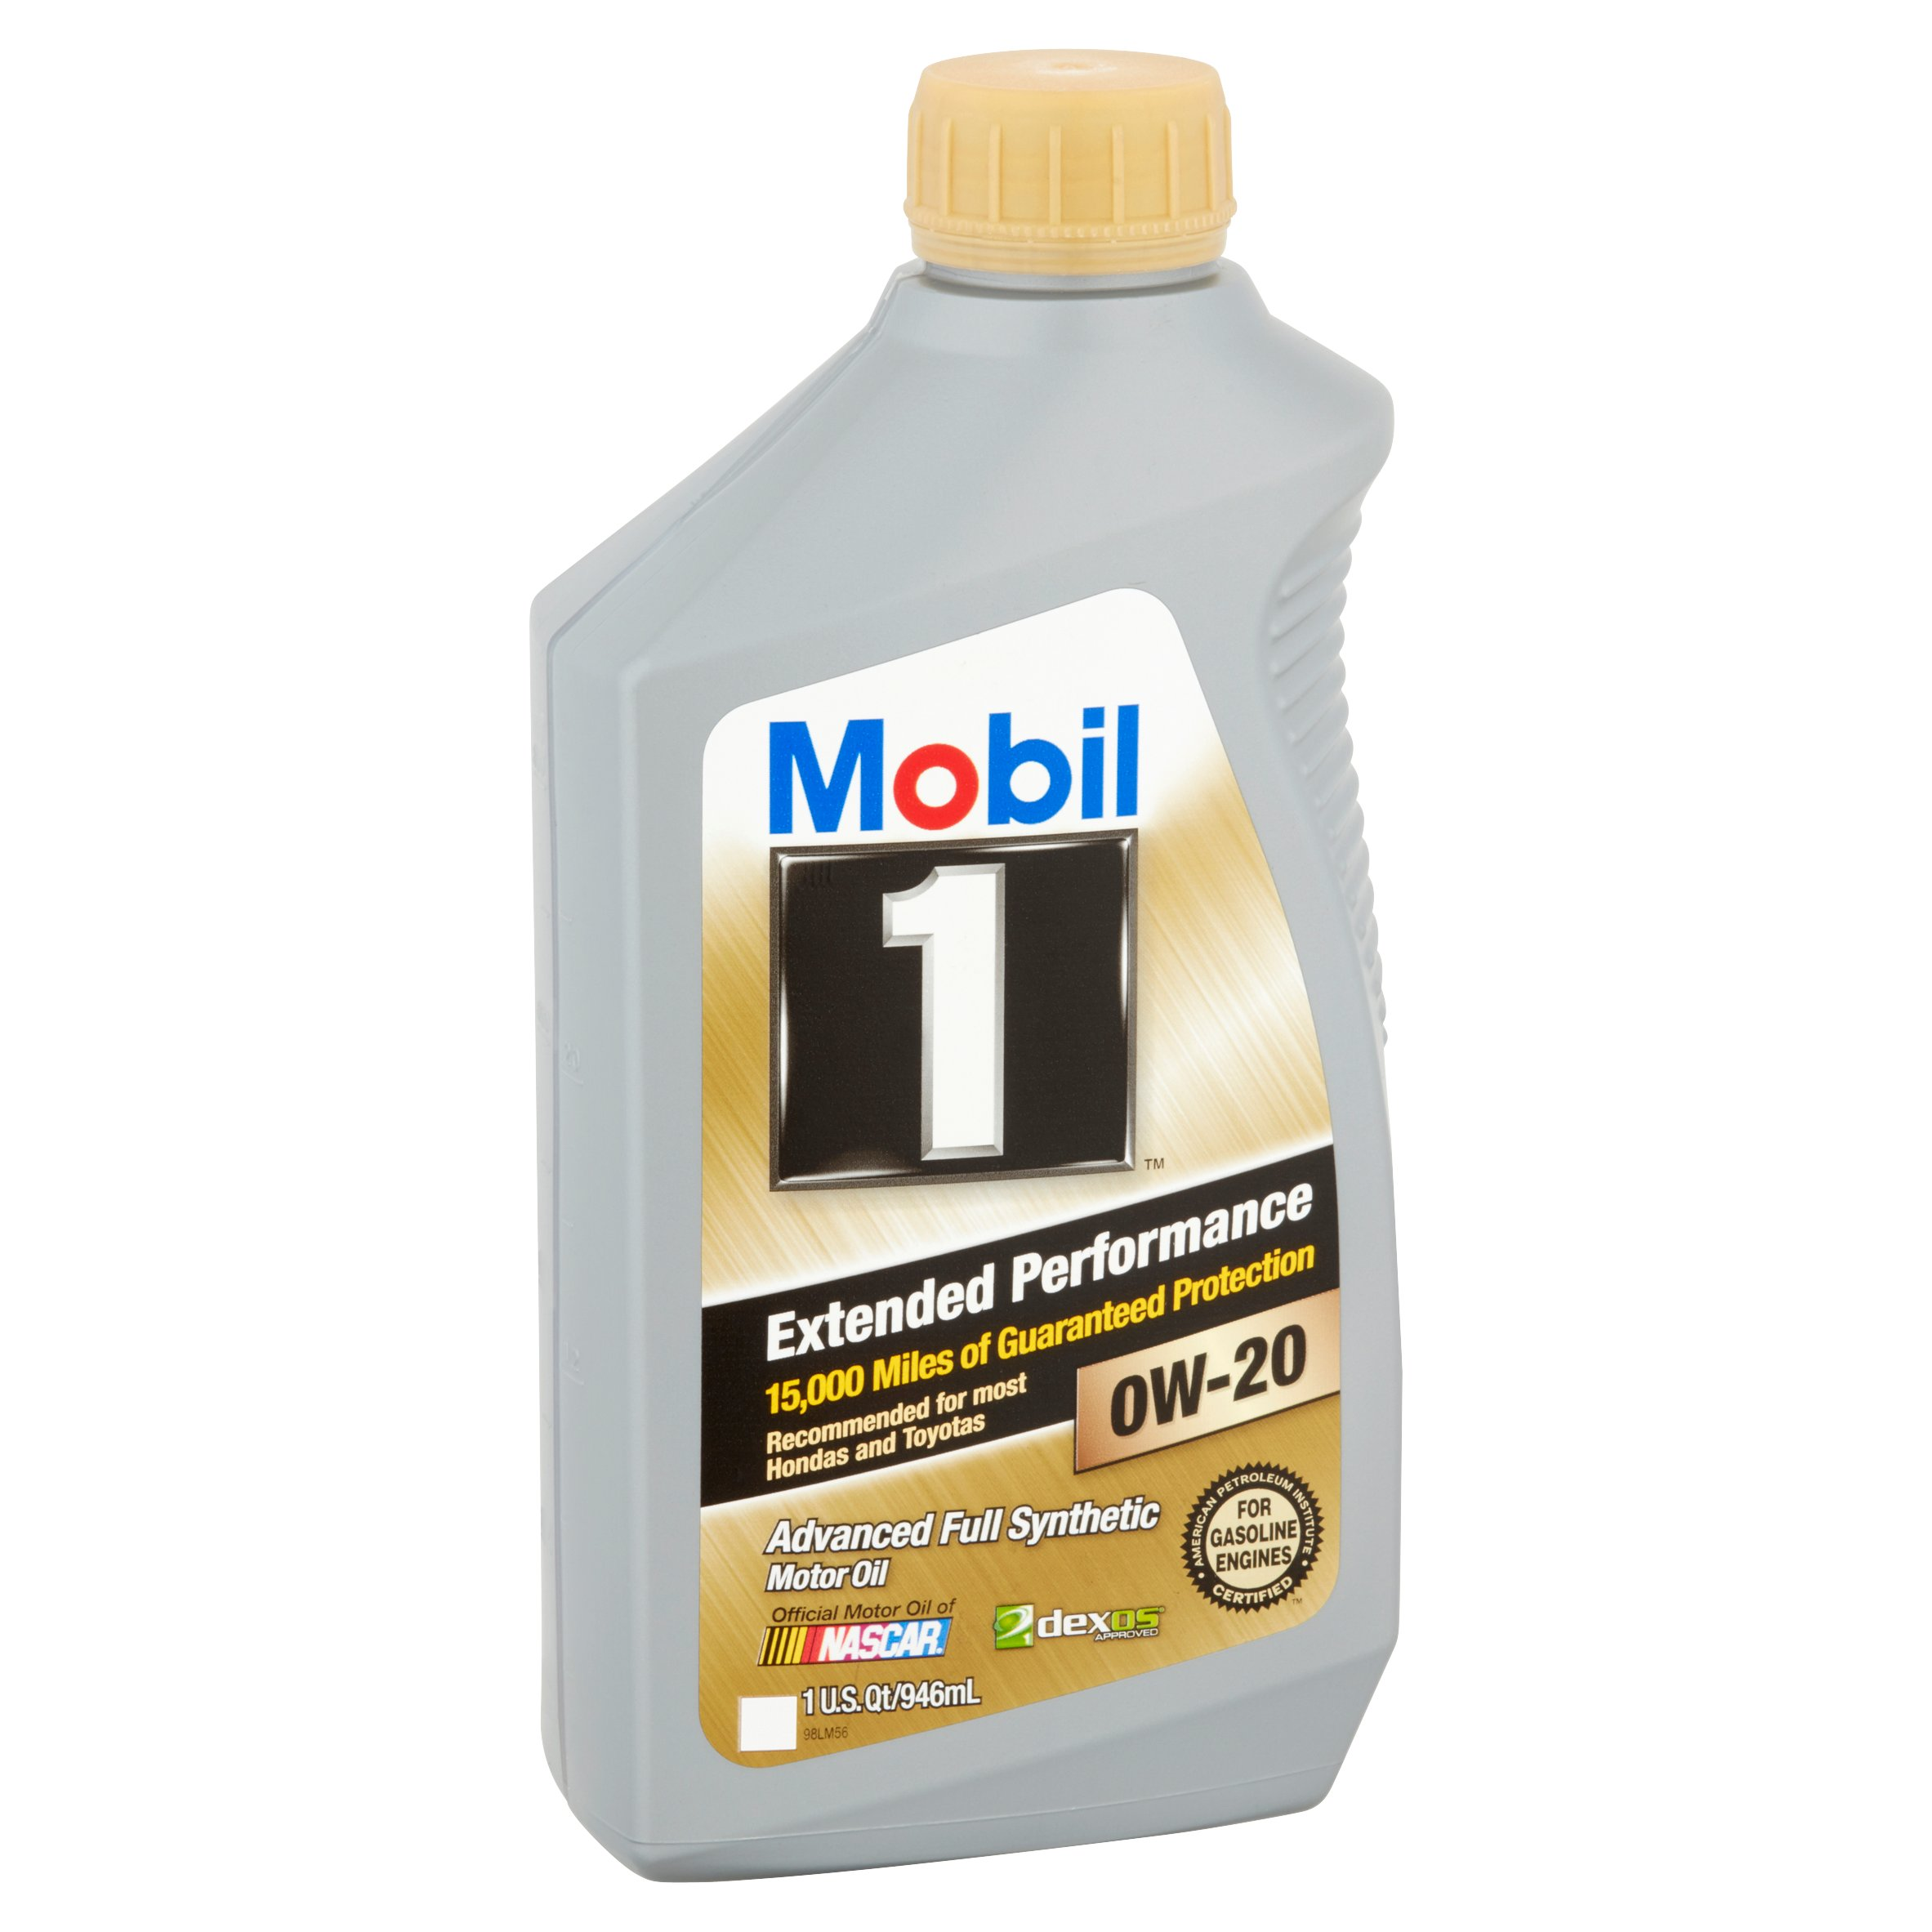 Mobil 1 extended performance 0w-20 advanced full synthetic motor oil, 1 qt